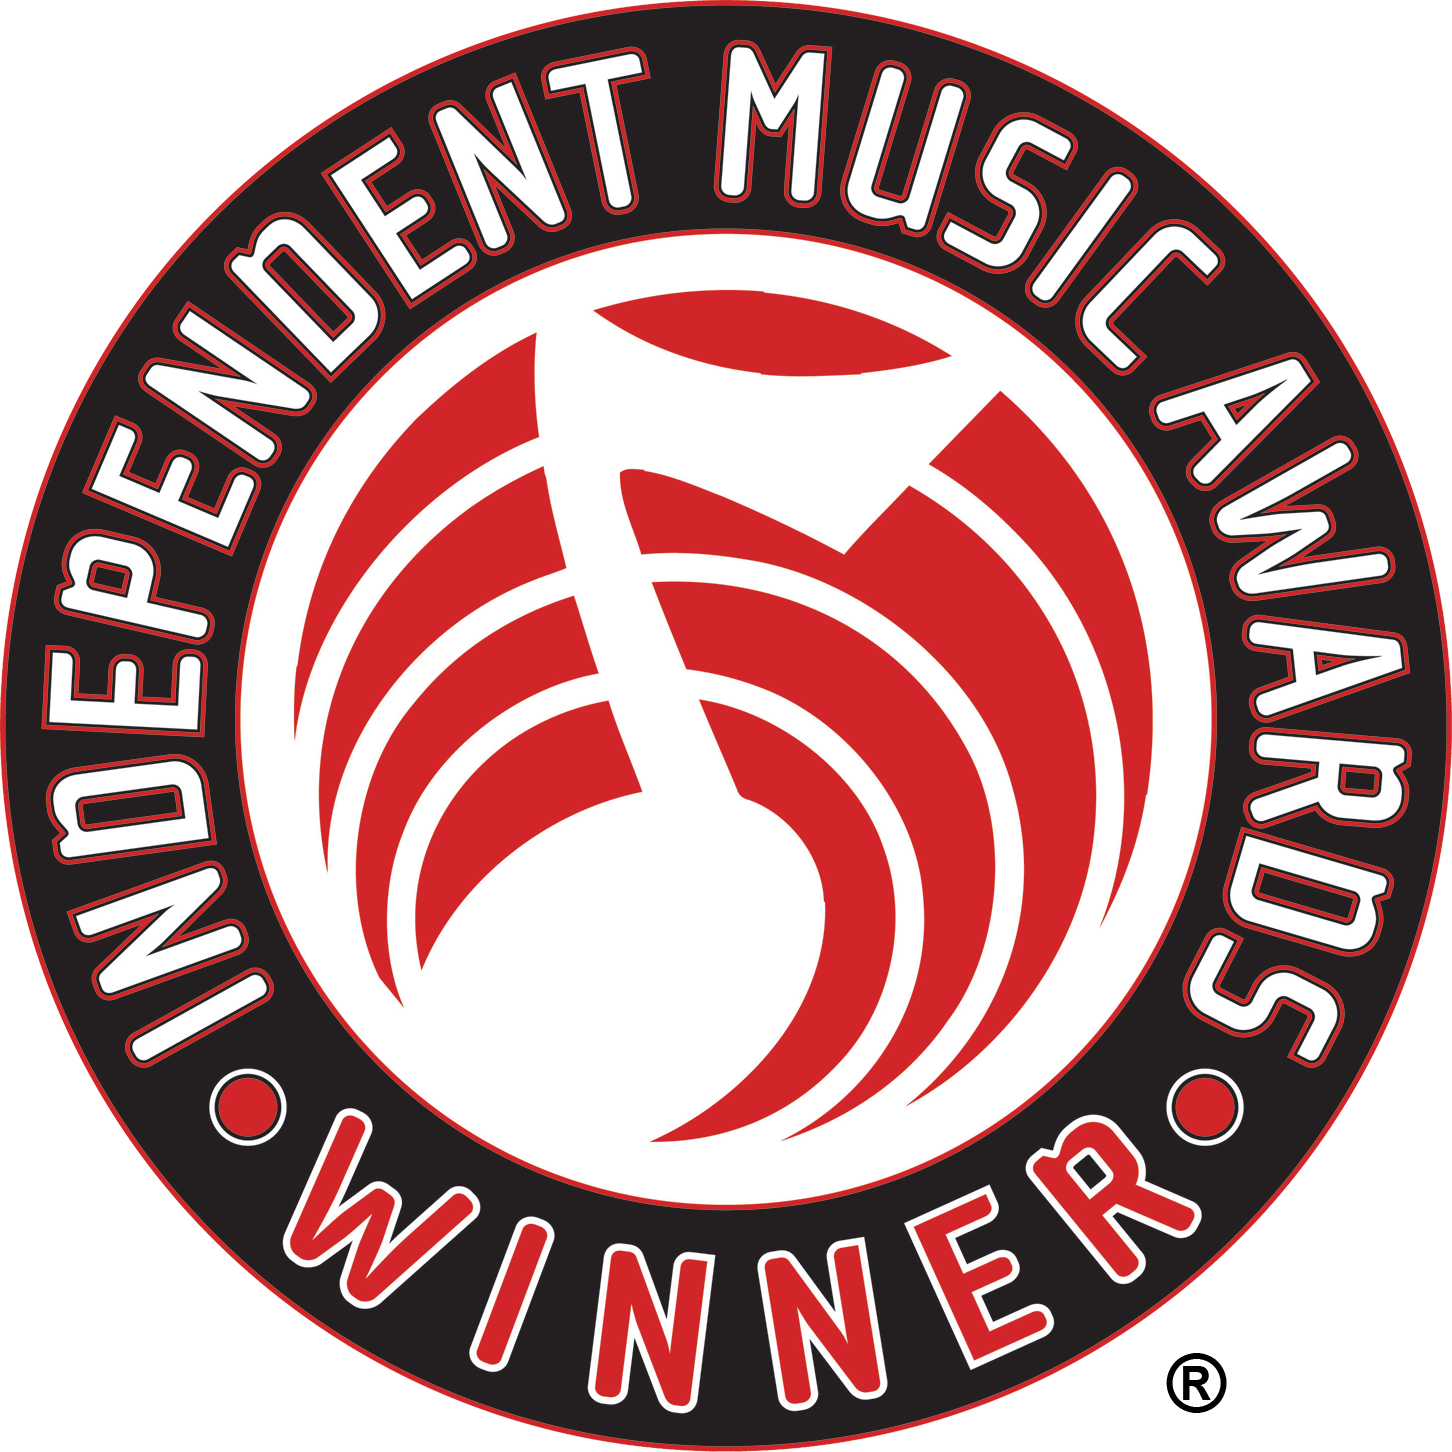 Rounder Songs wins a 2019 IMA!